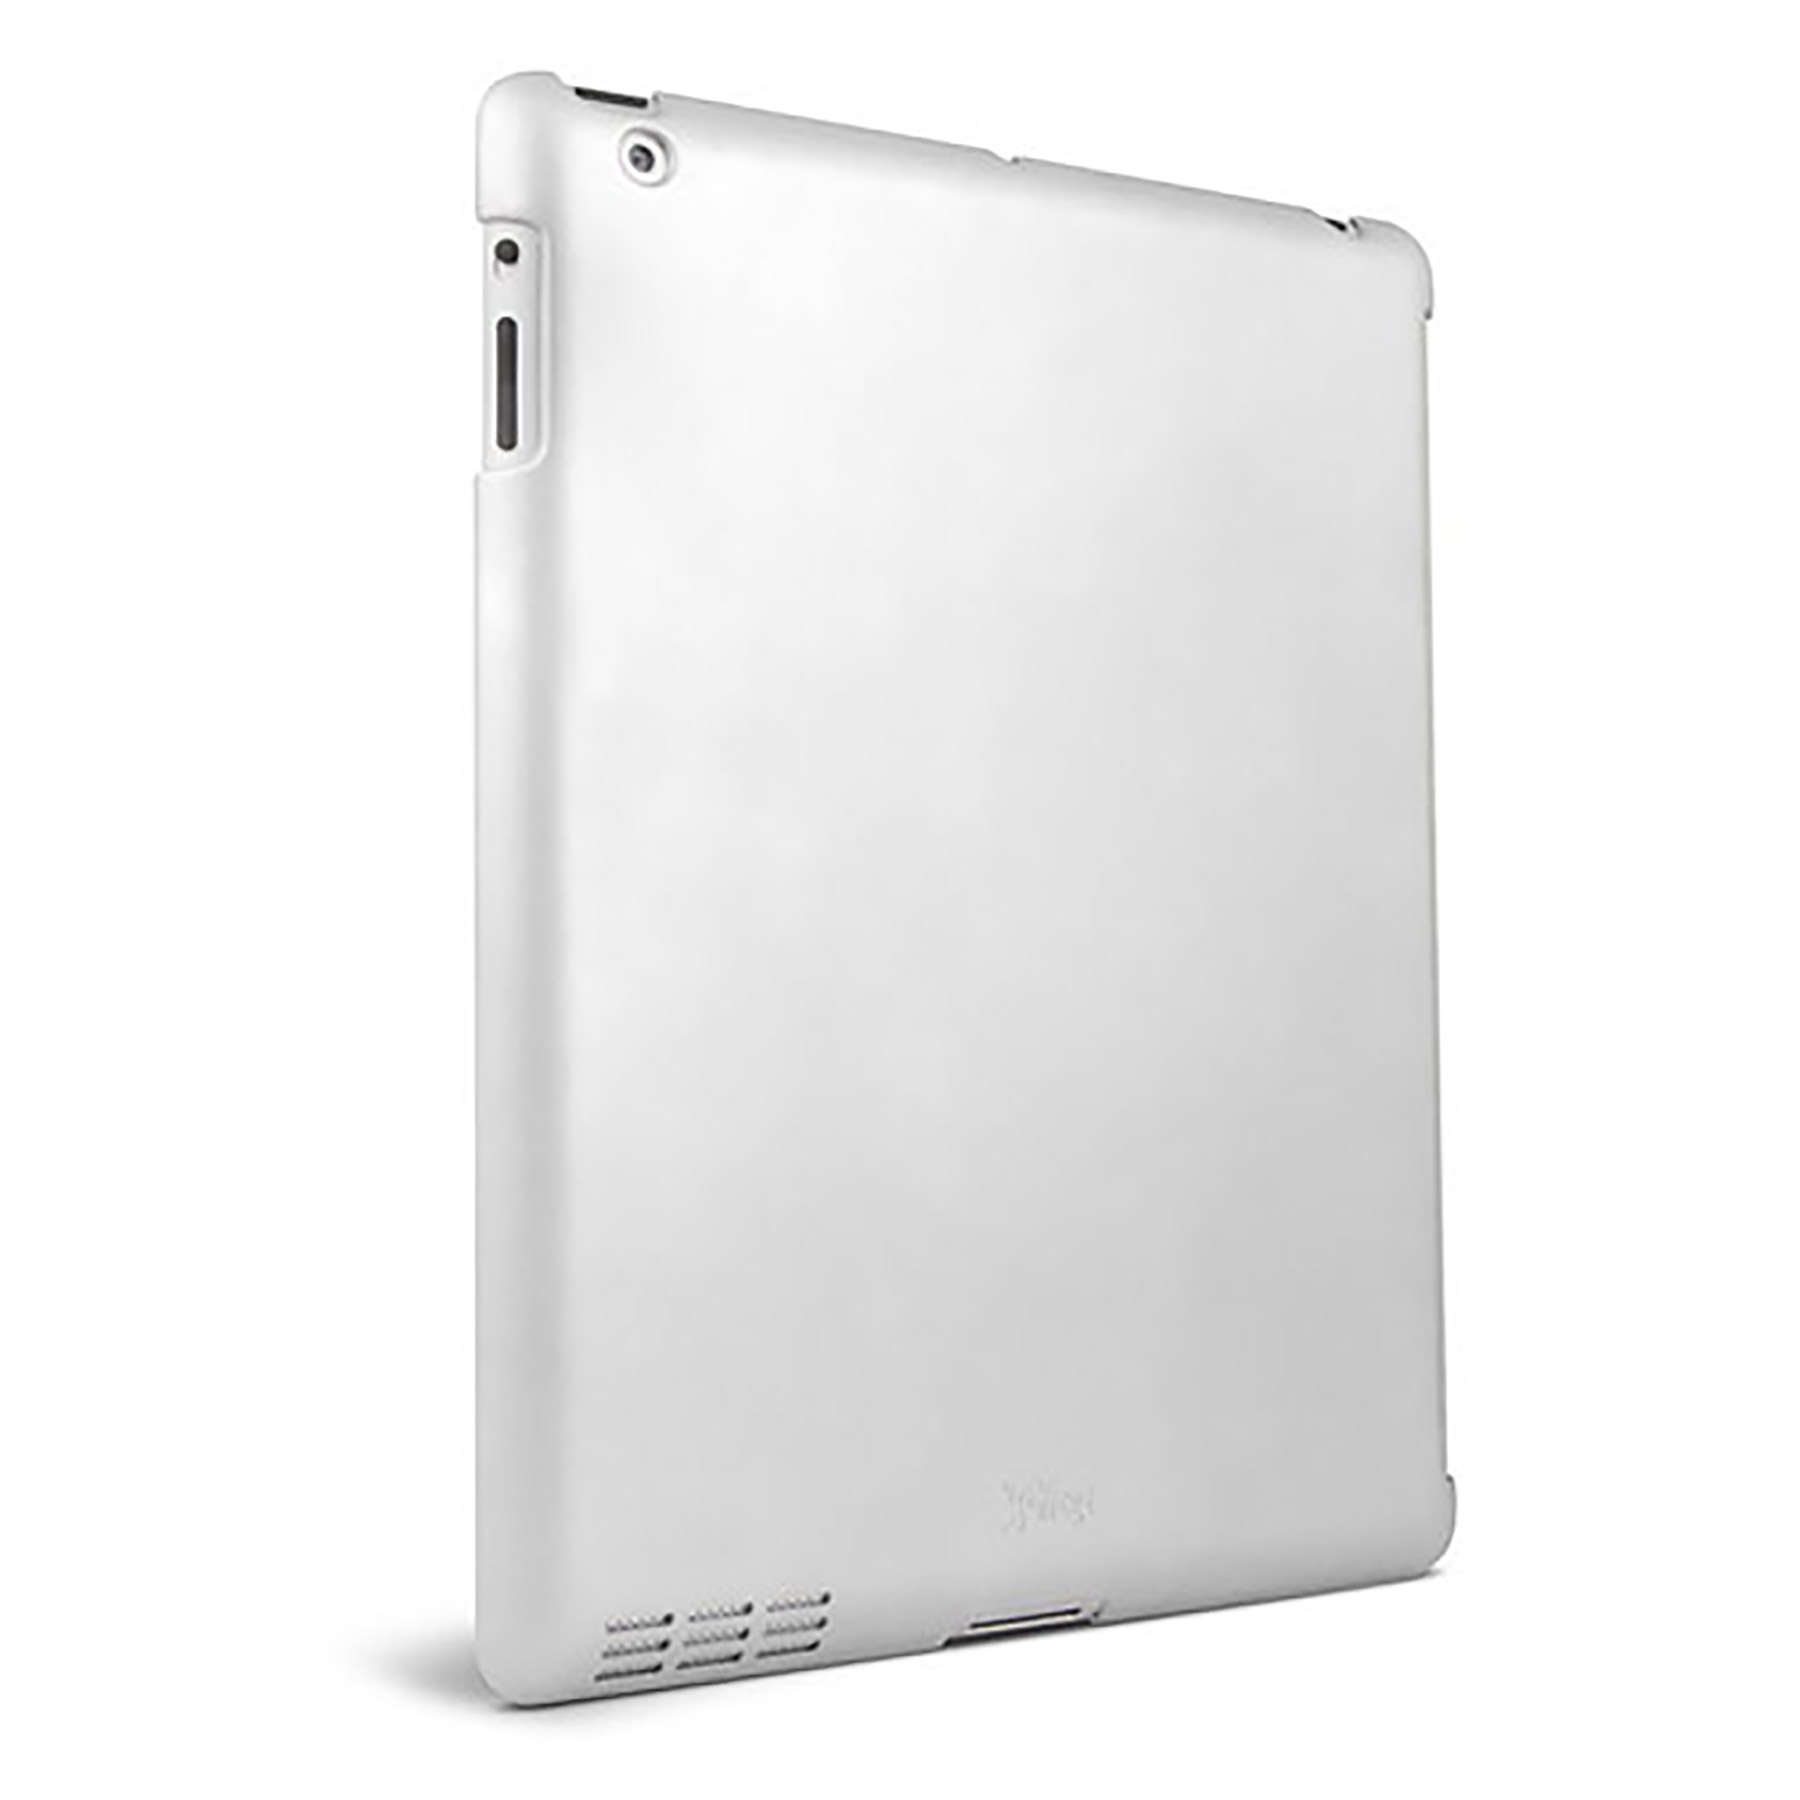 iPad 2 - Case - BackBone - White (iFrogz)